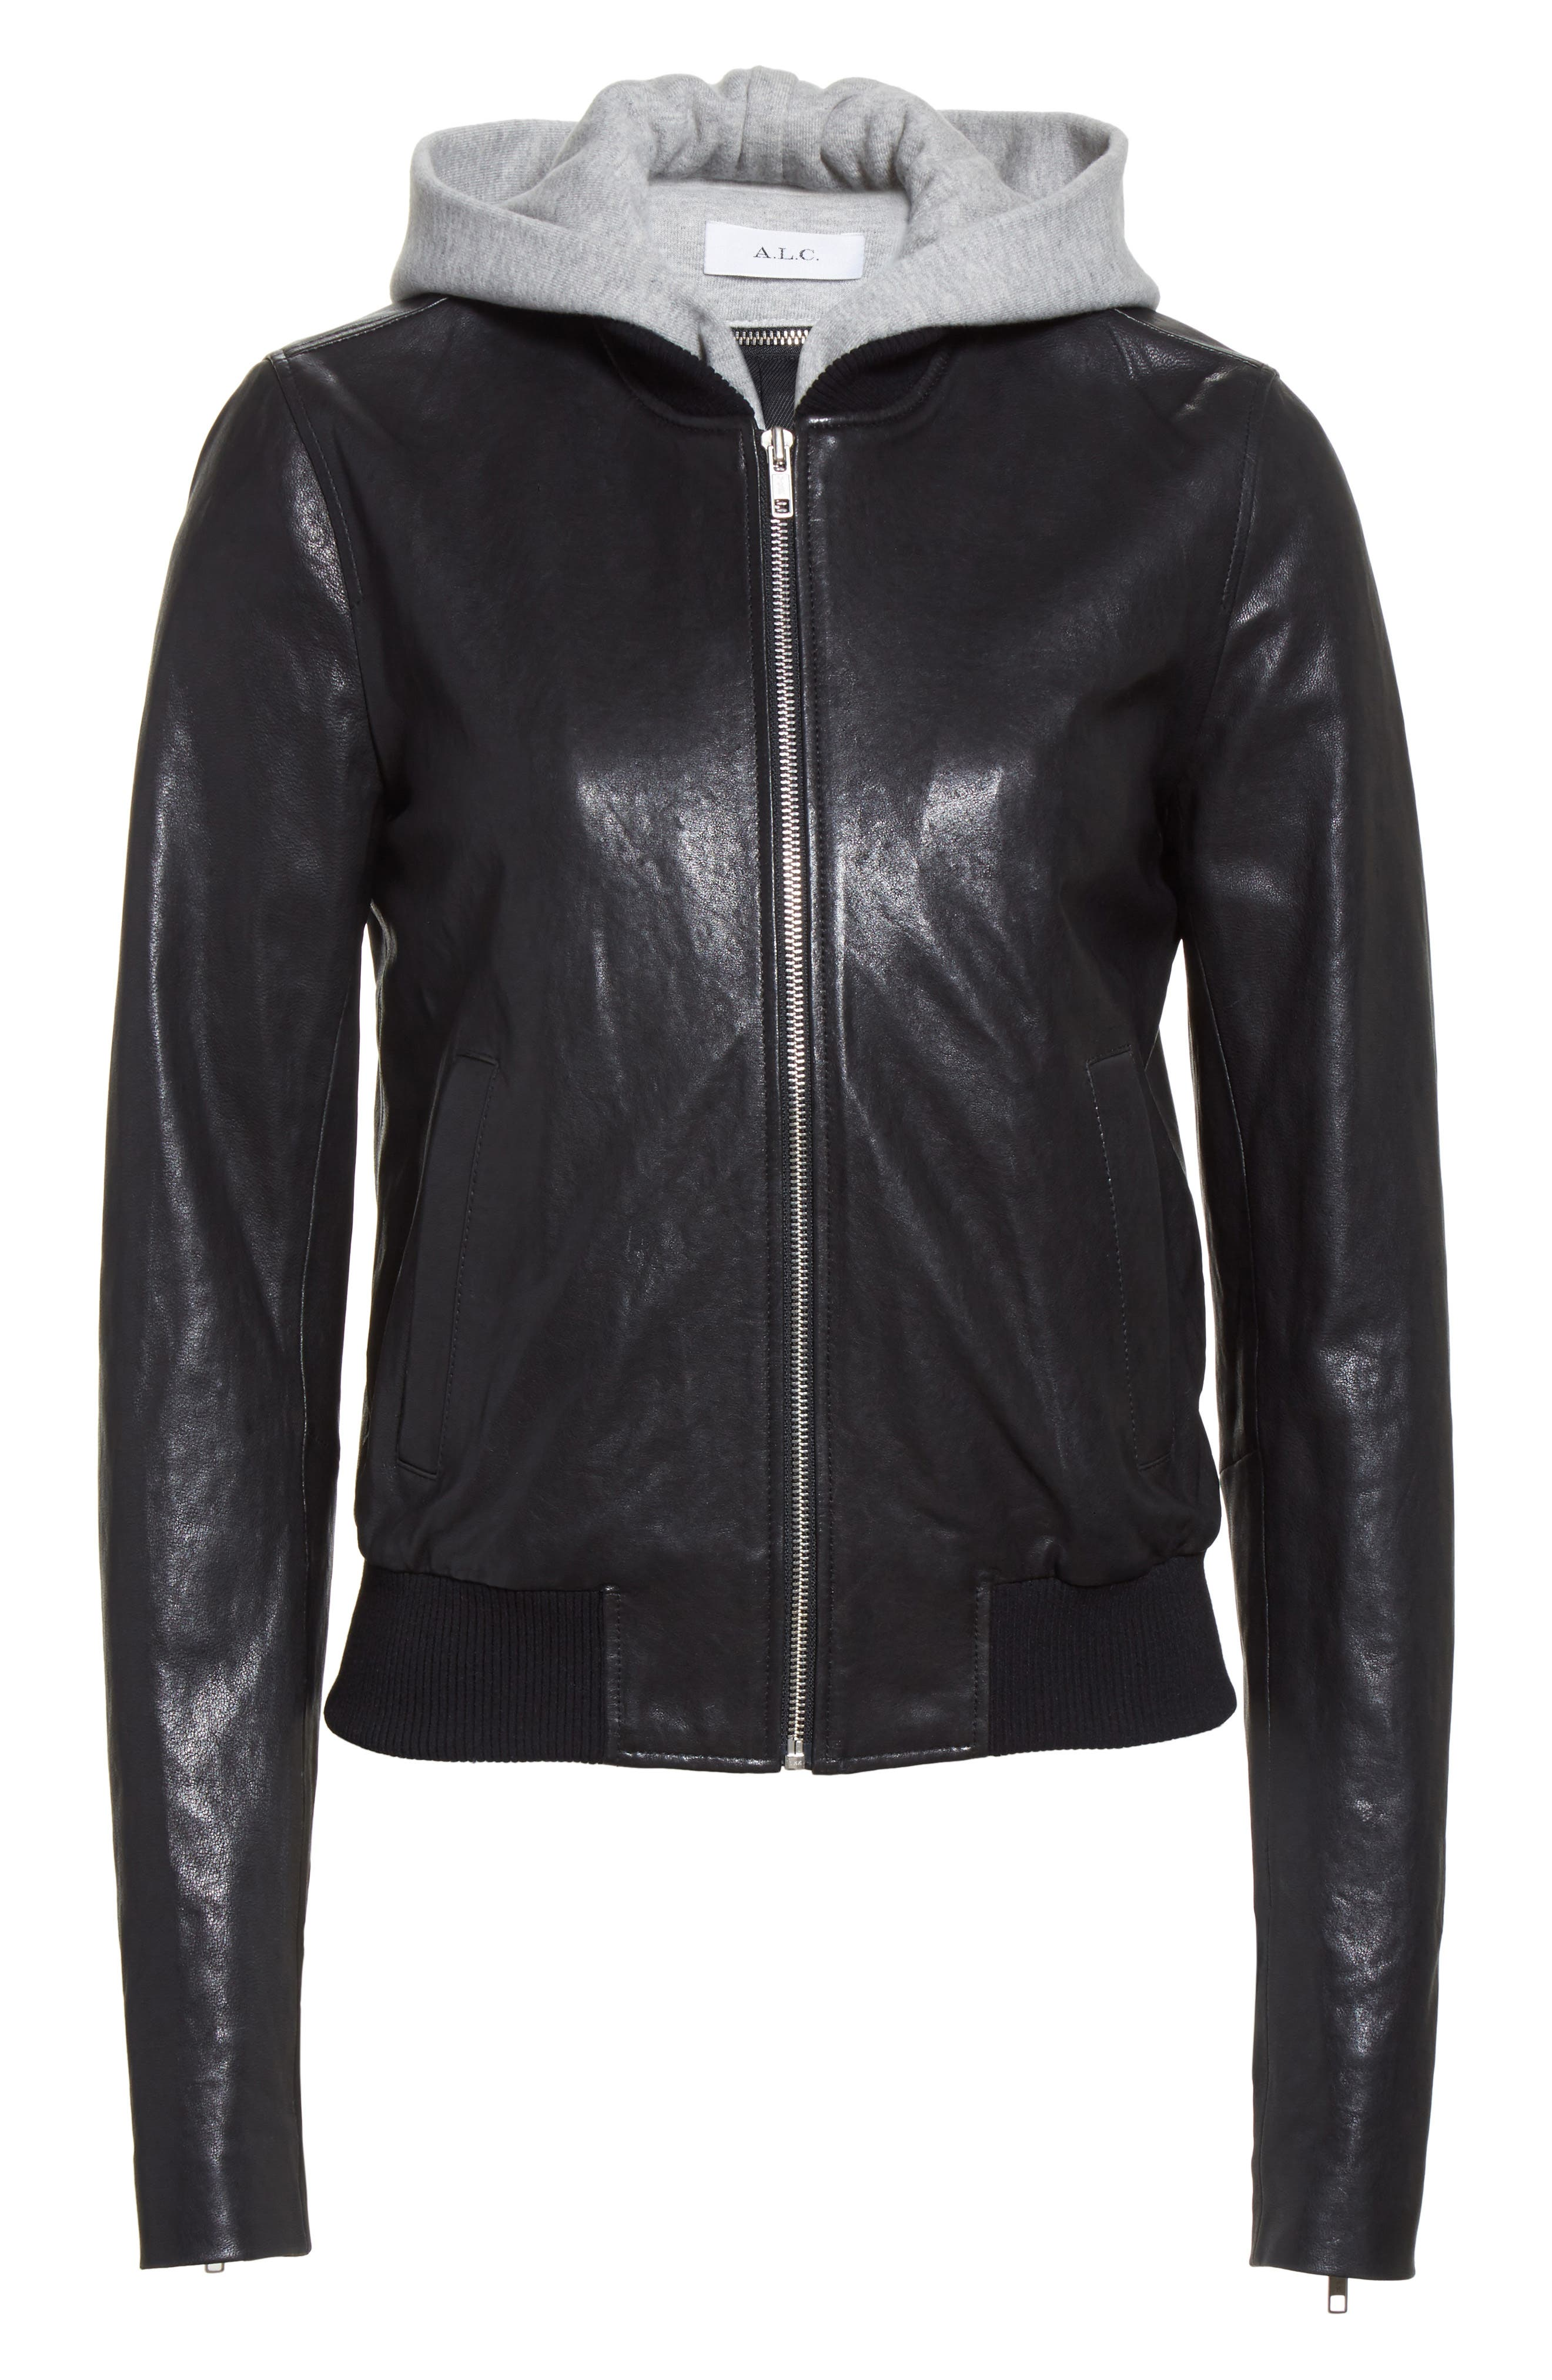 Edison Leather Jacket with Removable Hooded Inset,                             Alternate thumbnail 7, color,                             Black